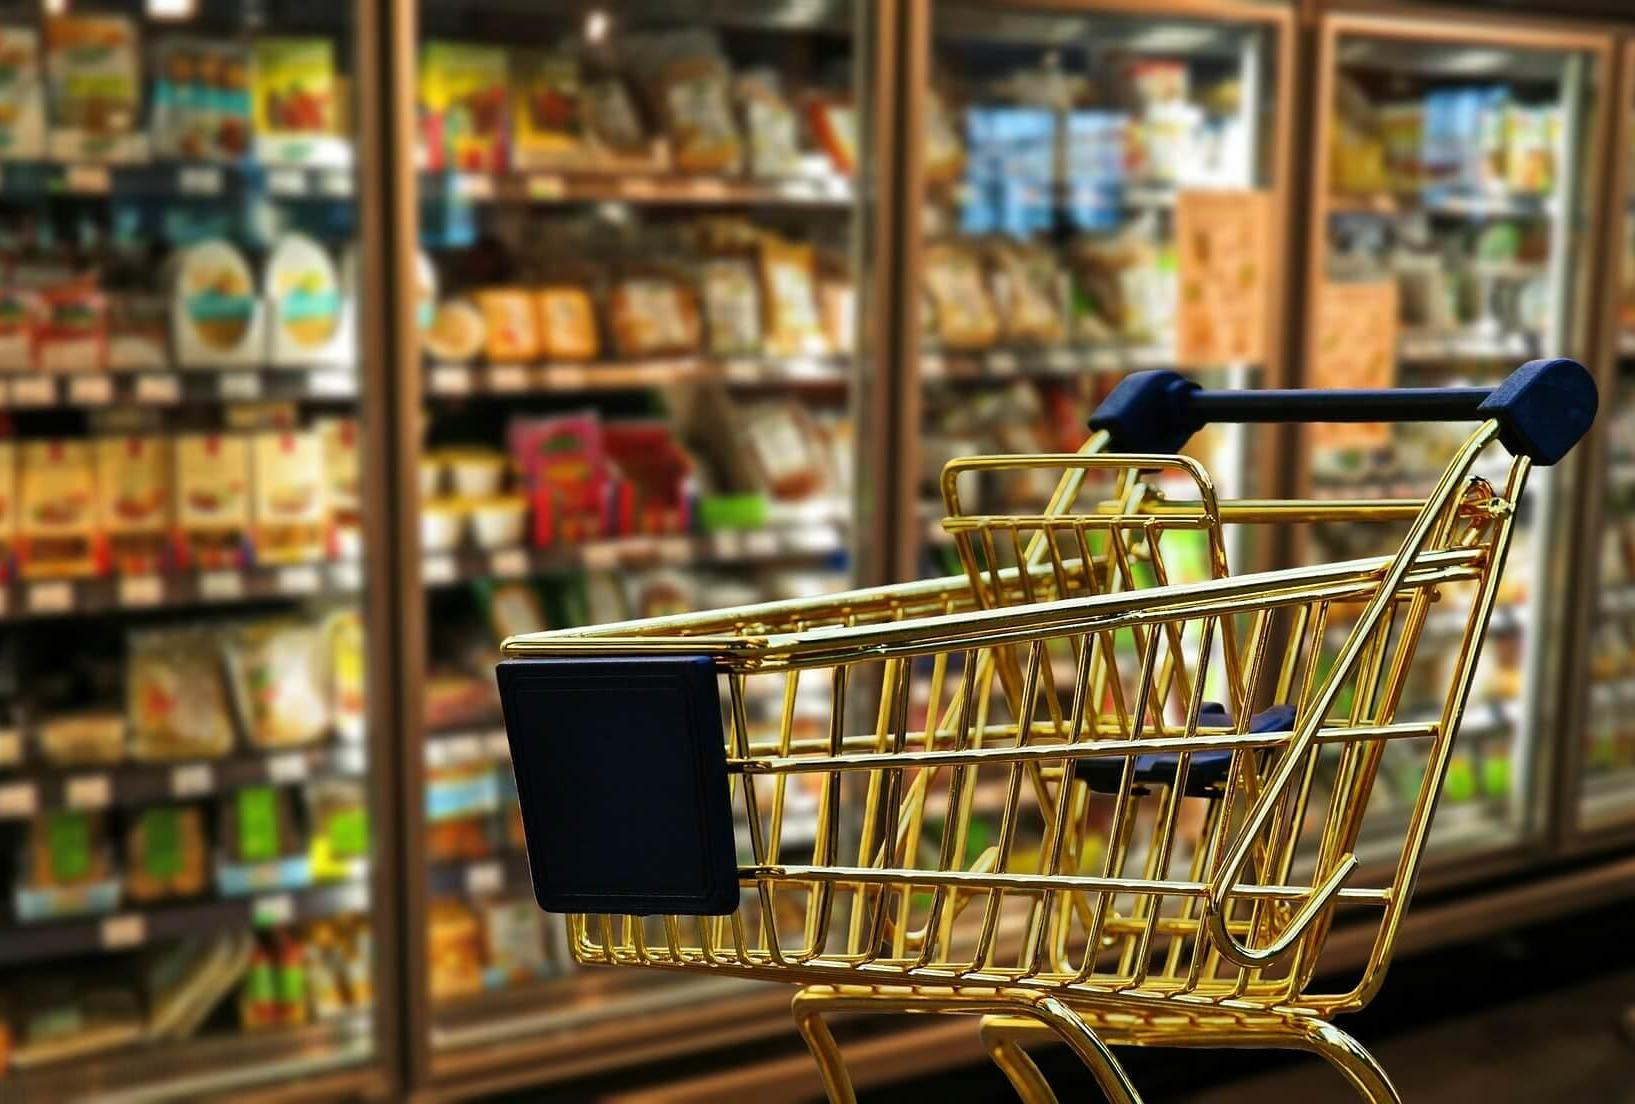 10 steps for a 'zero waste' shopping routine